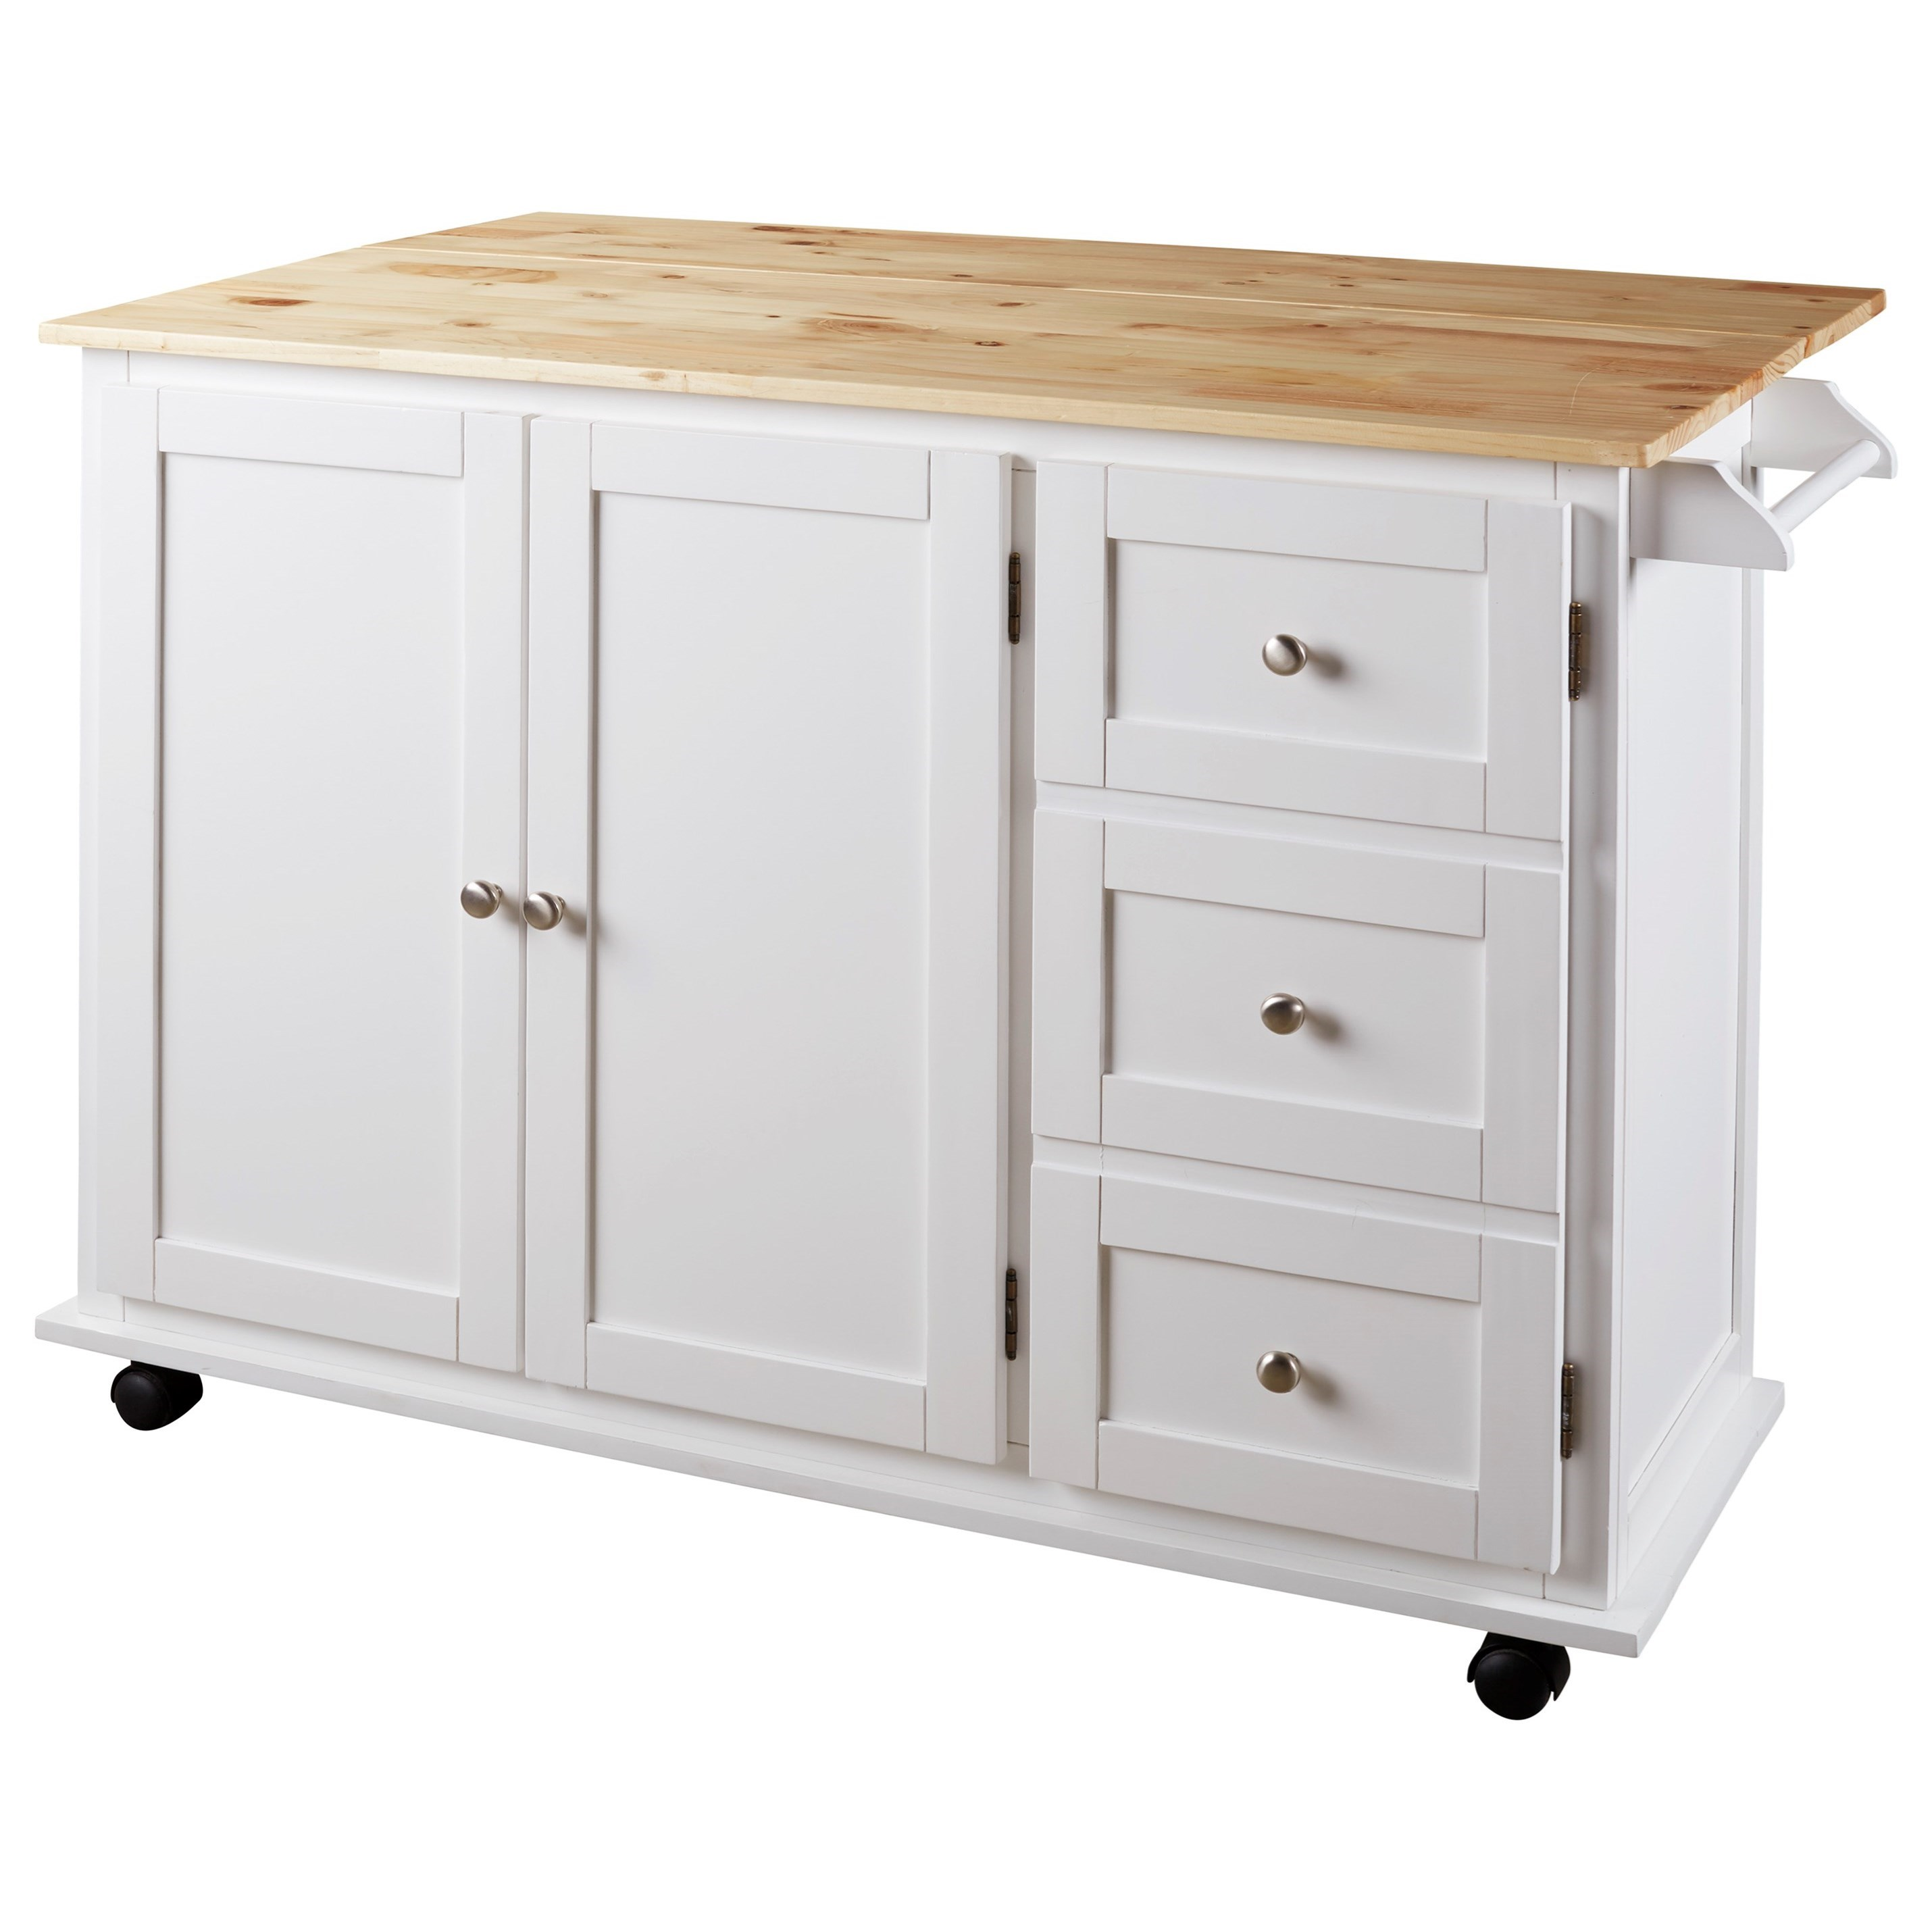 Two-Tone Kitchen Cart with Casters and Drop Leaf